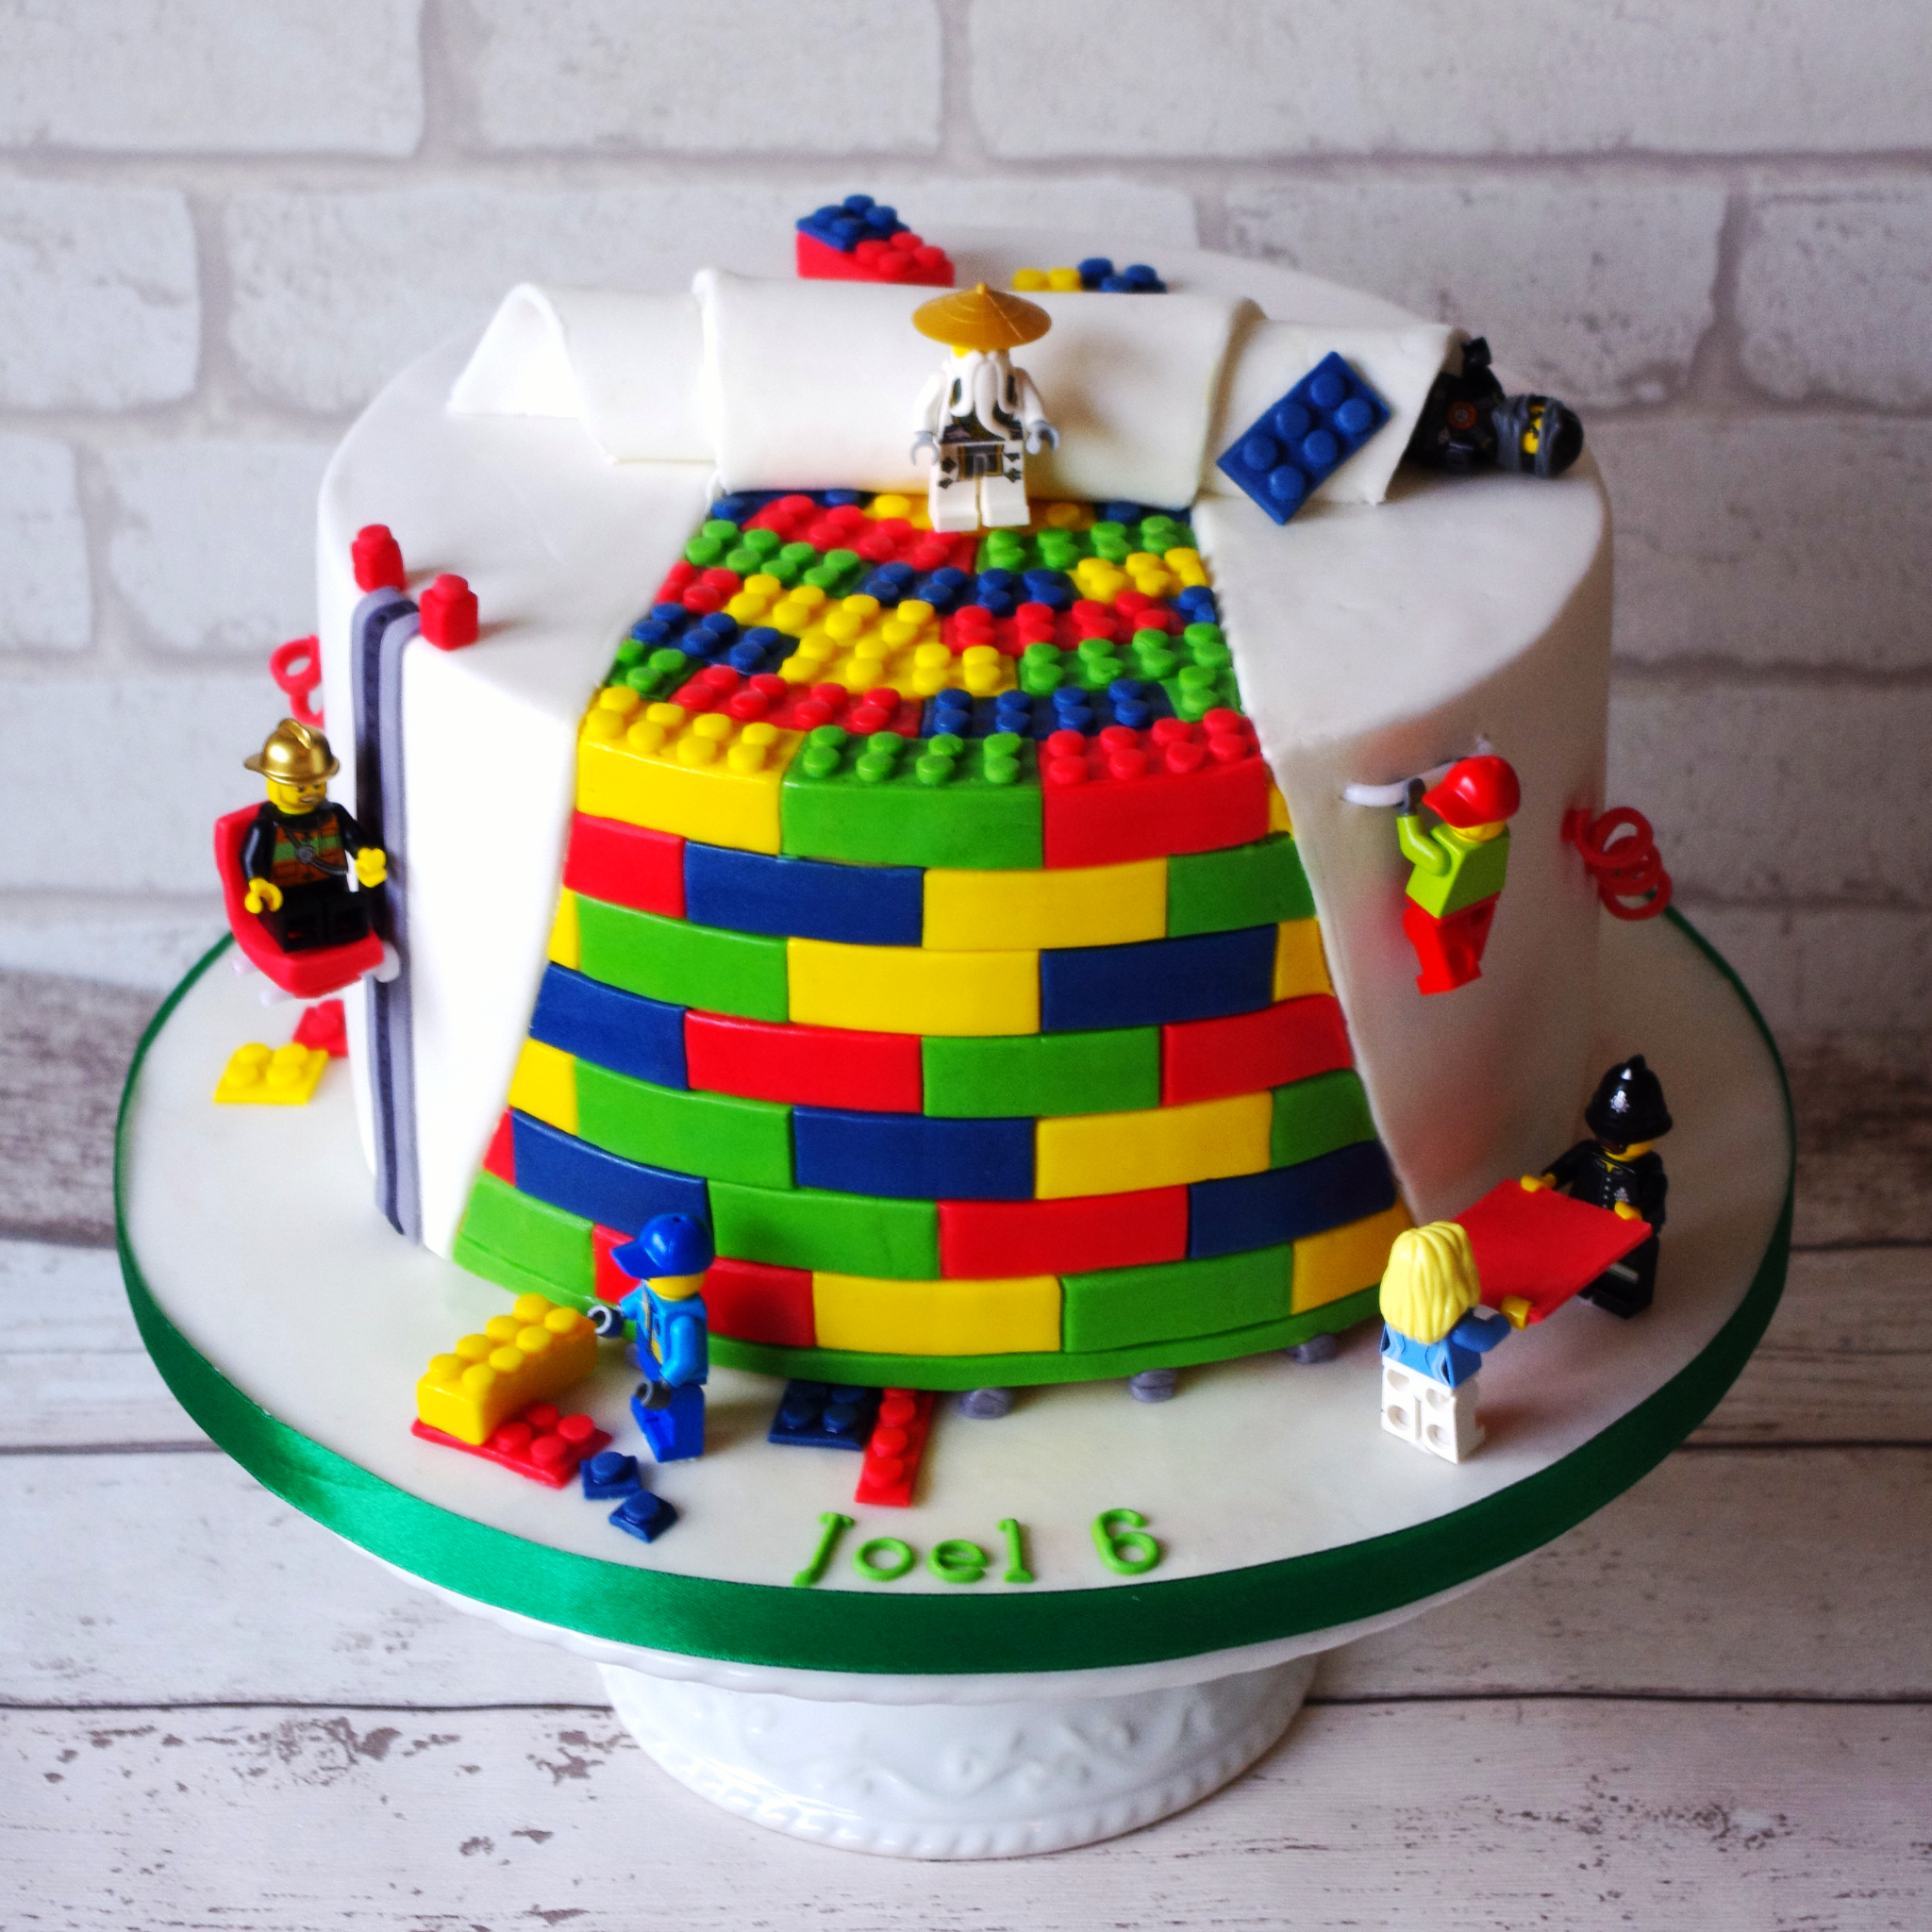 Lego themed building block cake